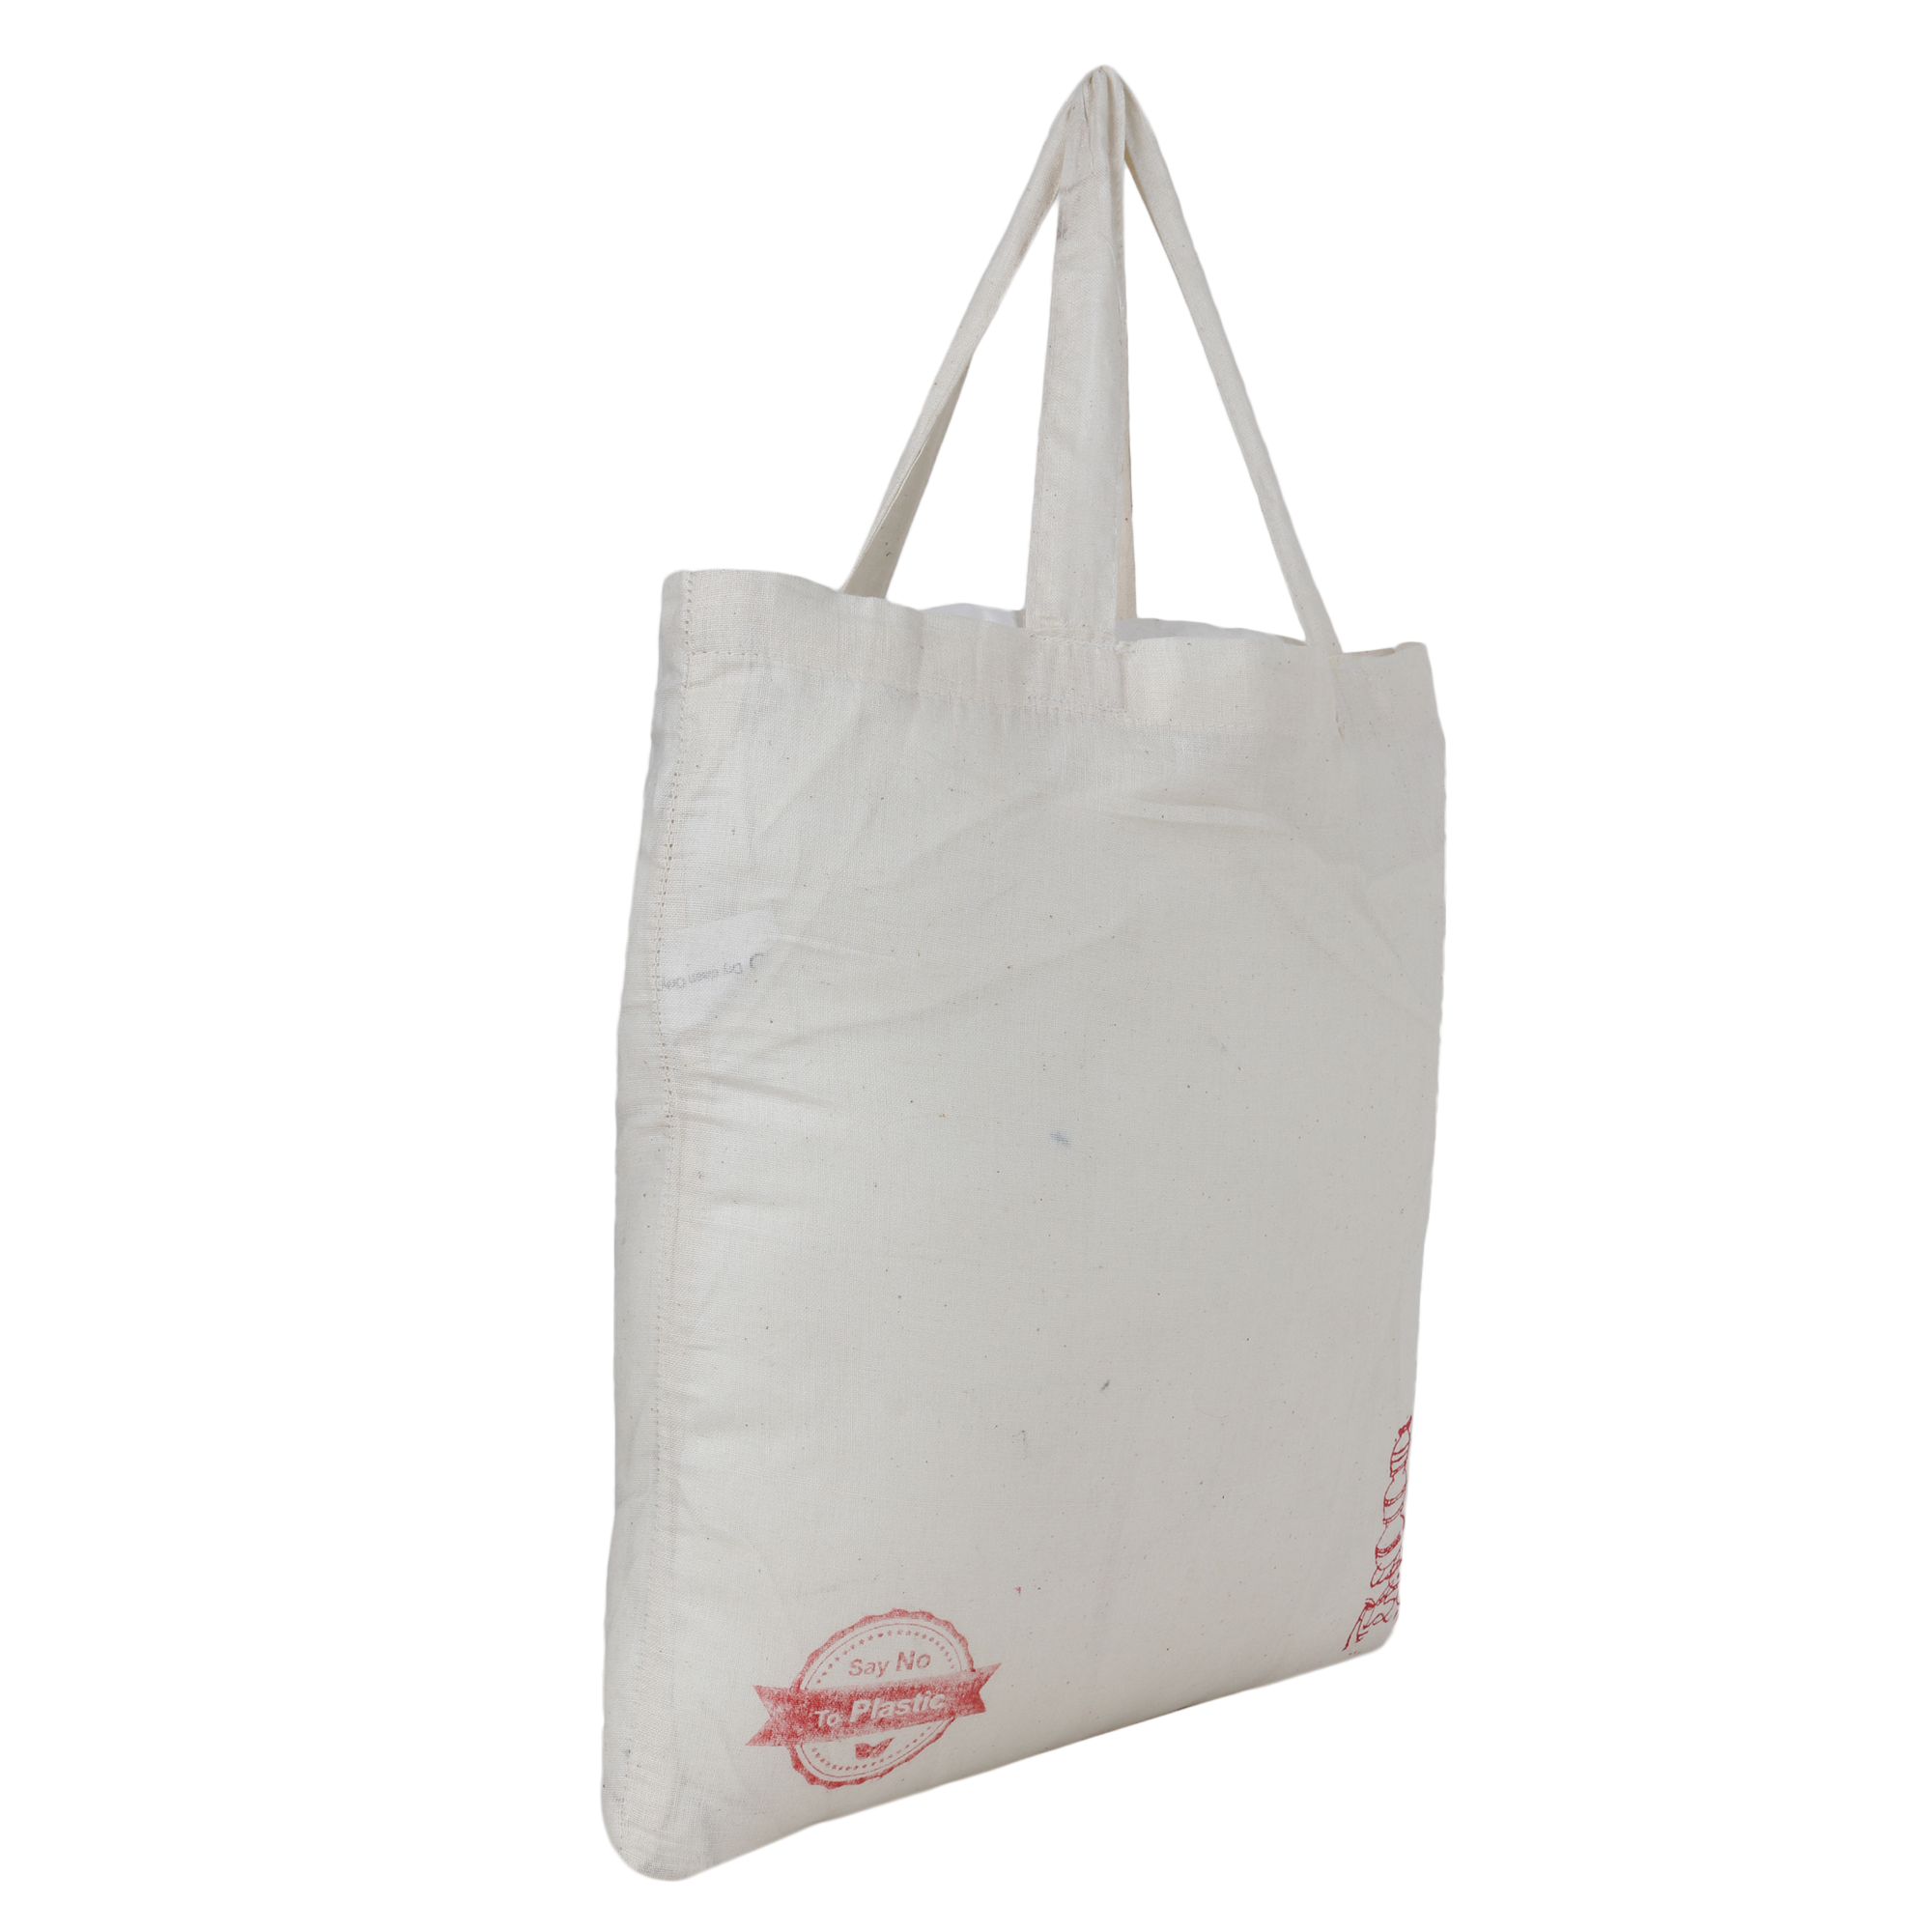 218cf27780 Reusable Shopping Bags – Set of 5 - Curated online shop for ...